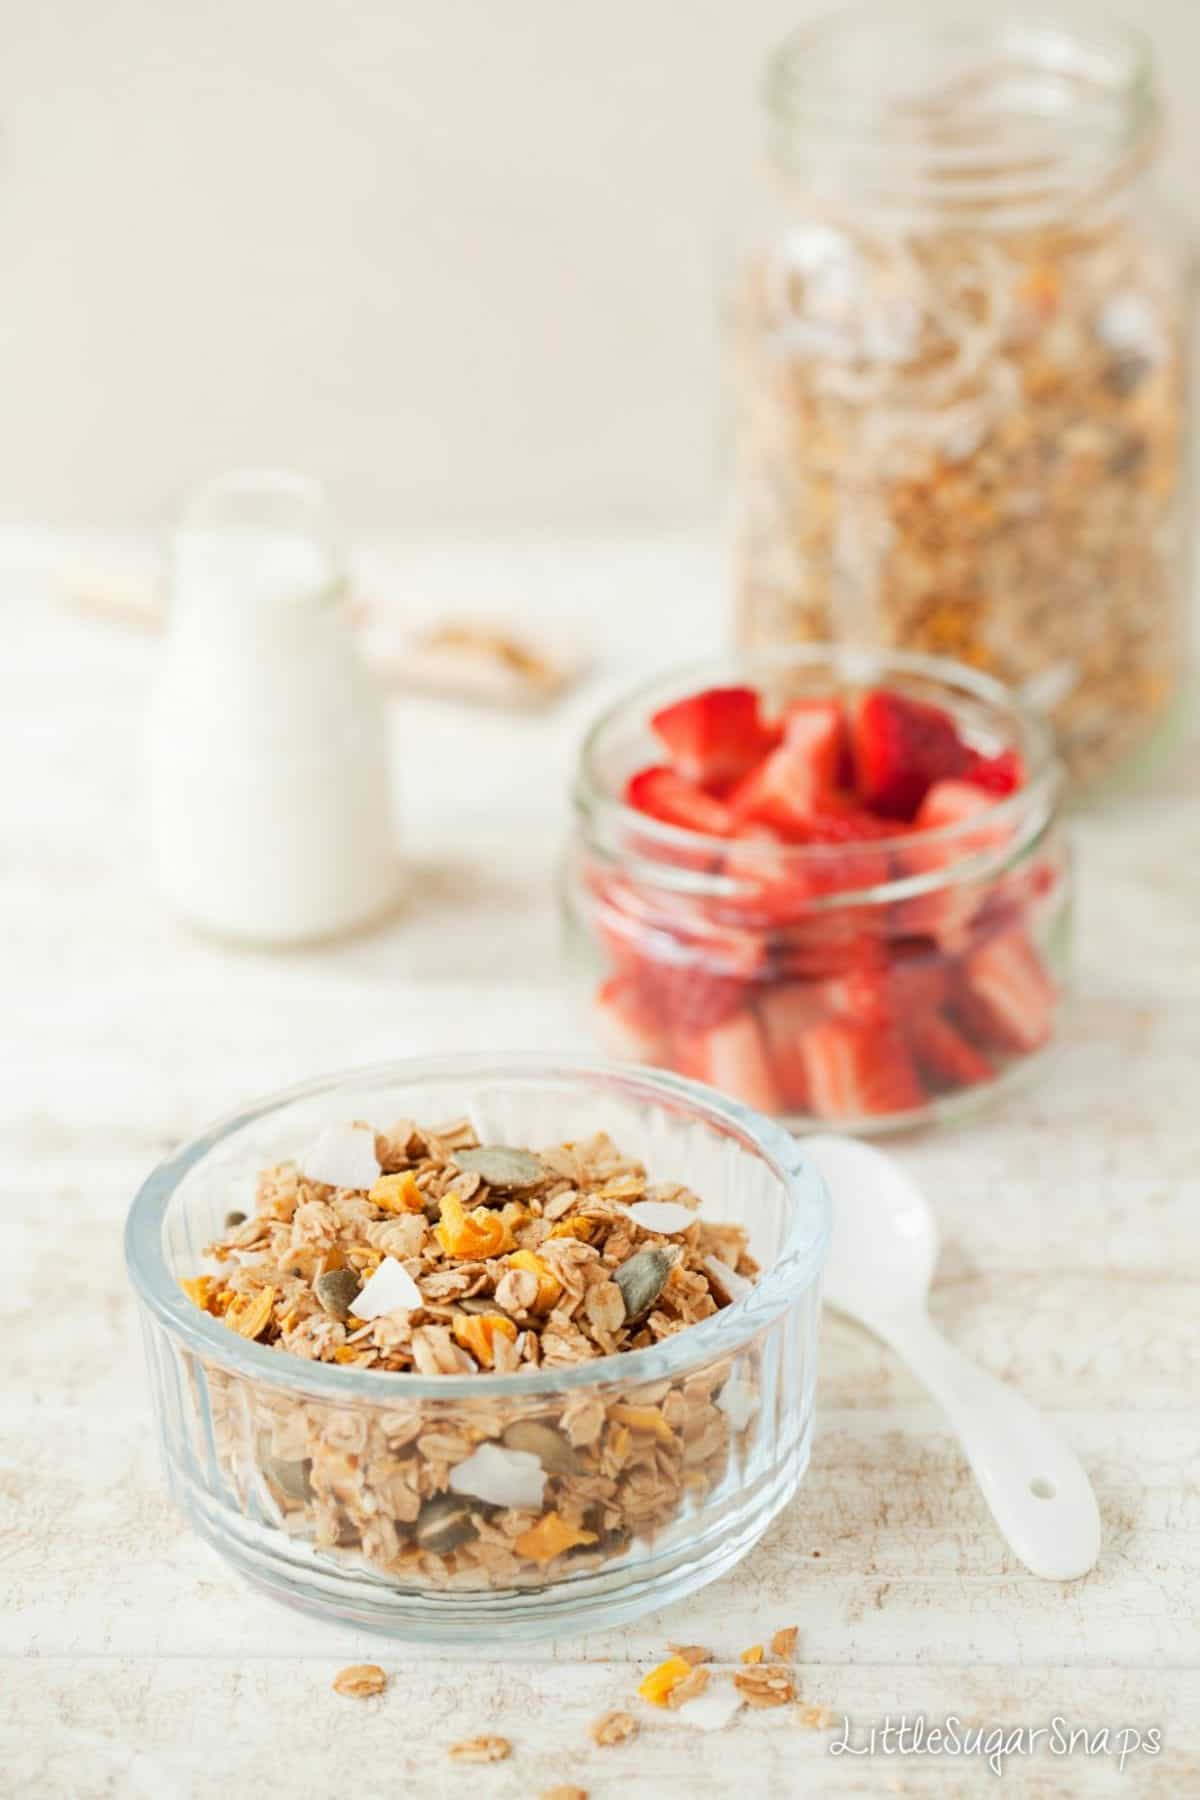 Granola with dried mango, coconut and pumpkin seeds and fresh strawberries